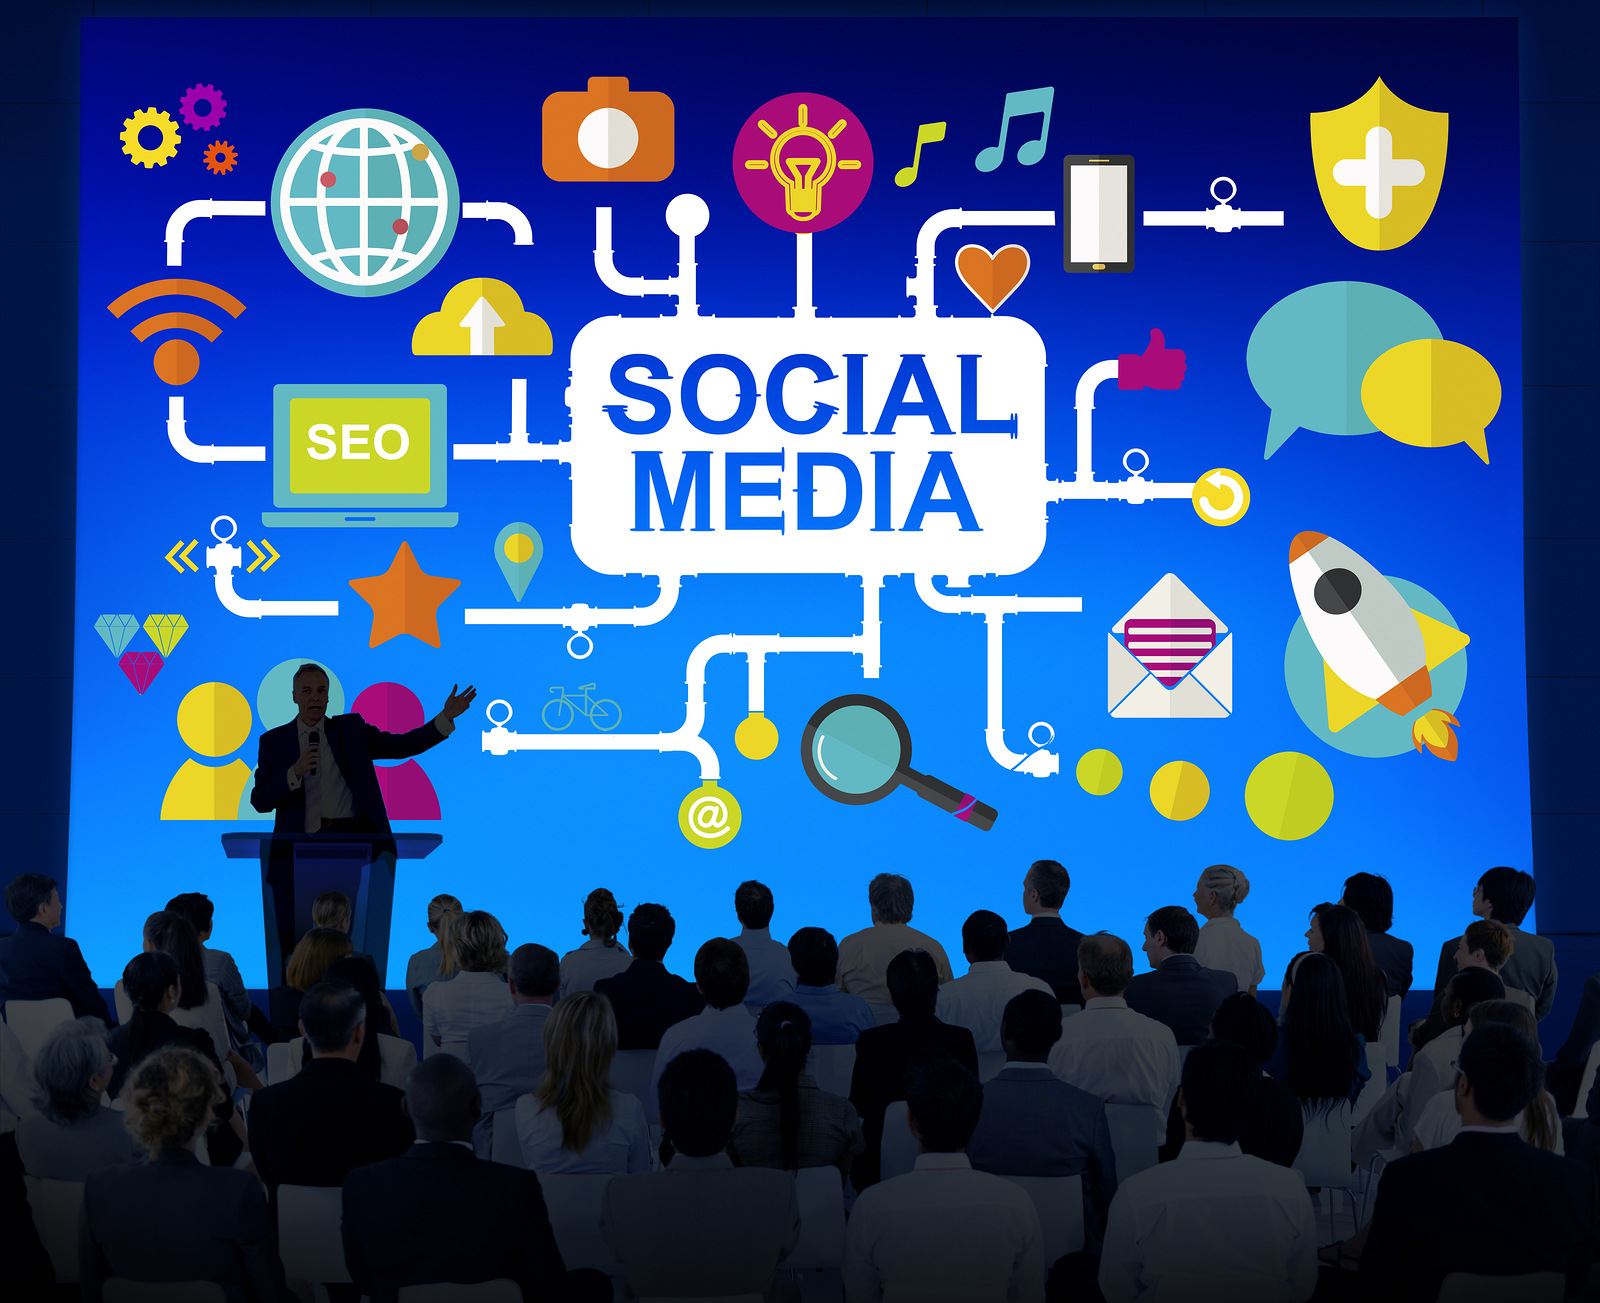 A Look at Social Media's Role in Enhancing Business Value